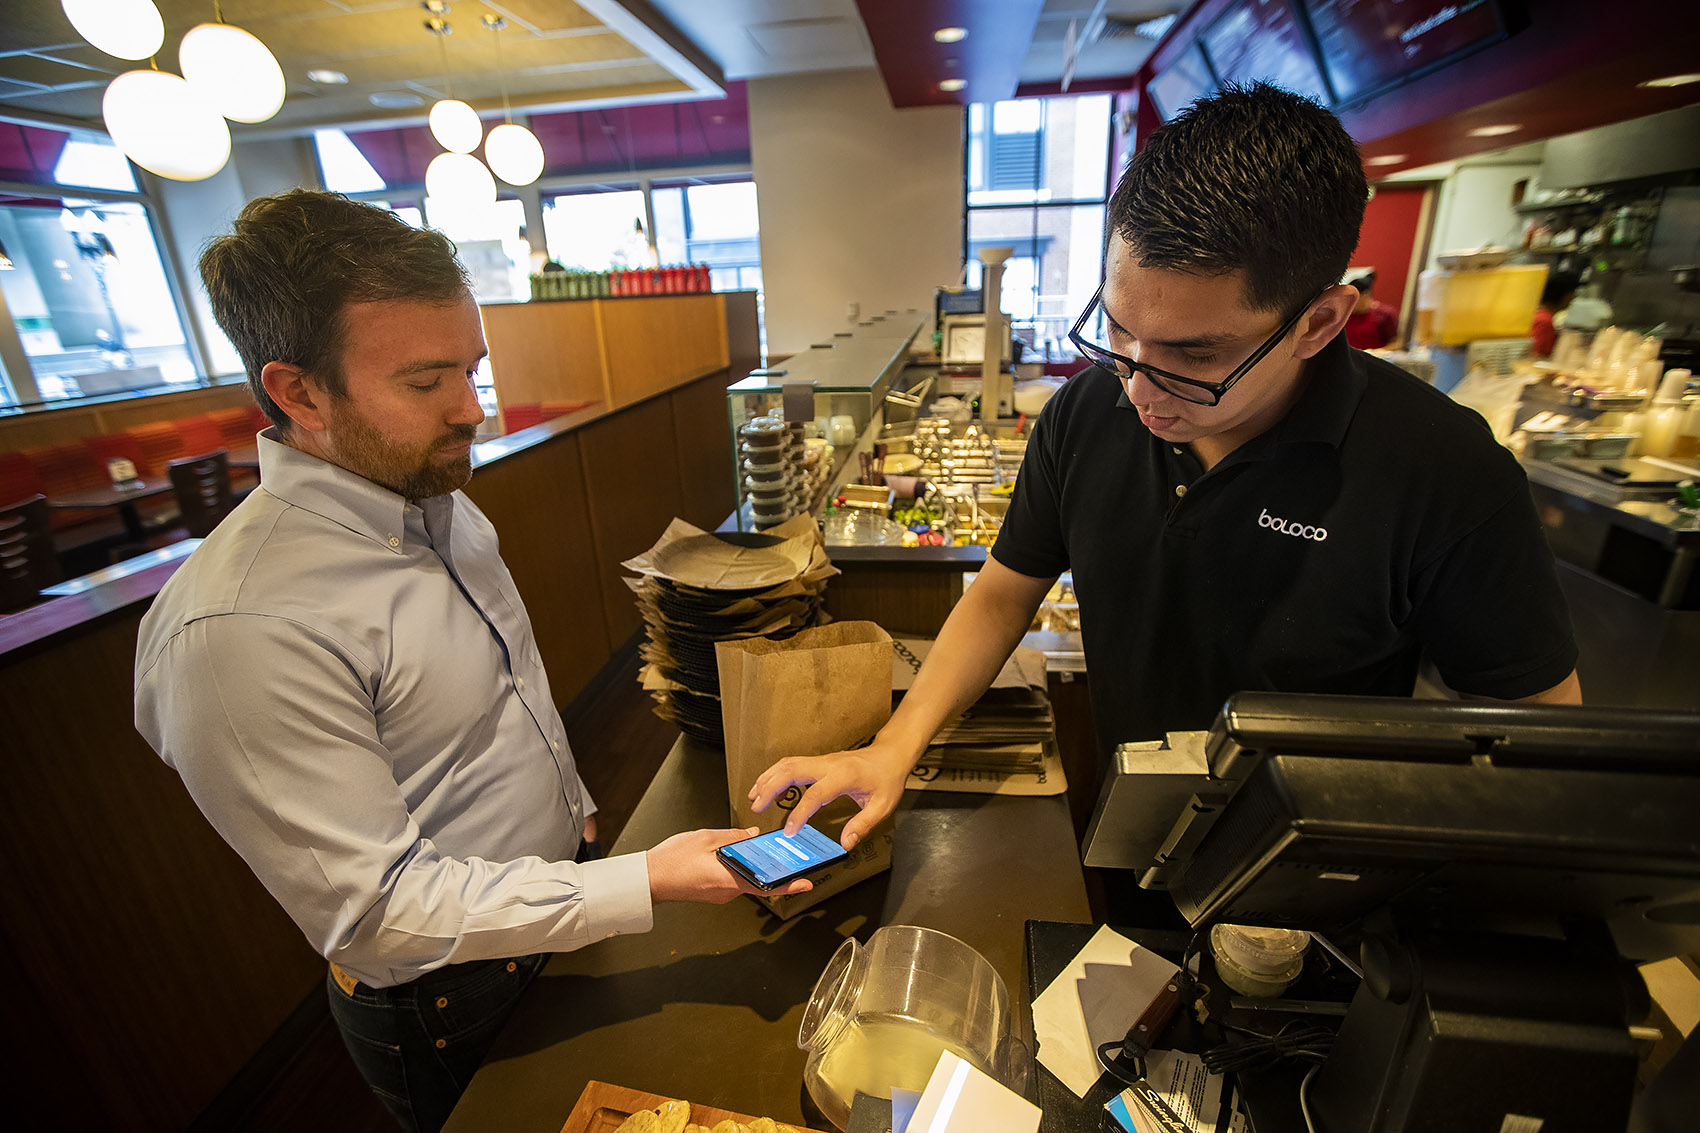 """Boloco manager Erick Guitierrez taps Tom Leonard's phone as he purchases a breakfast burrito with the """"Food For All"""" app. (Jesse Costa/WBUR)"""